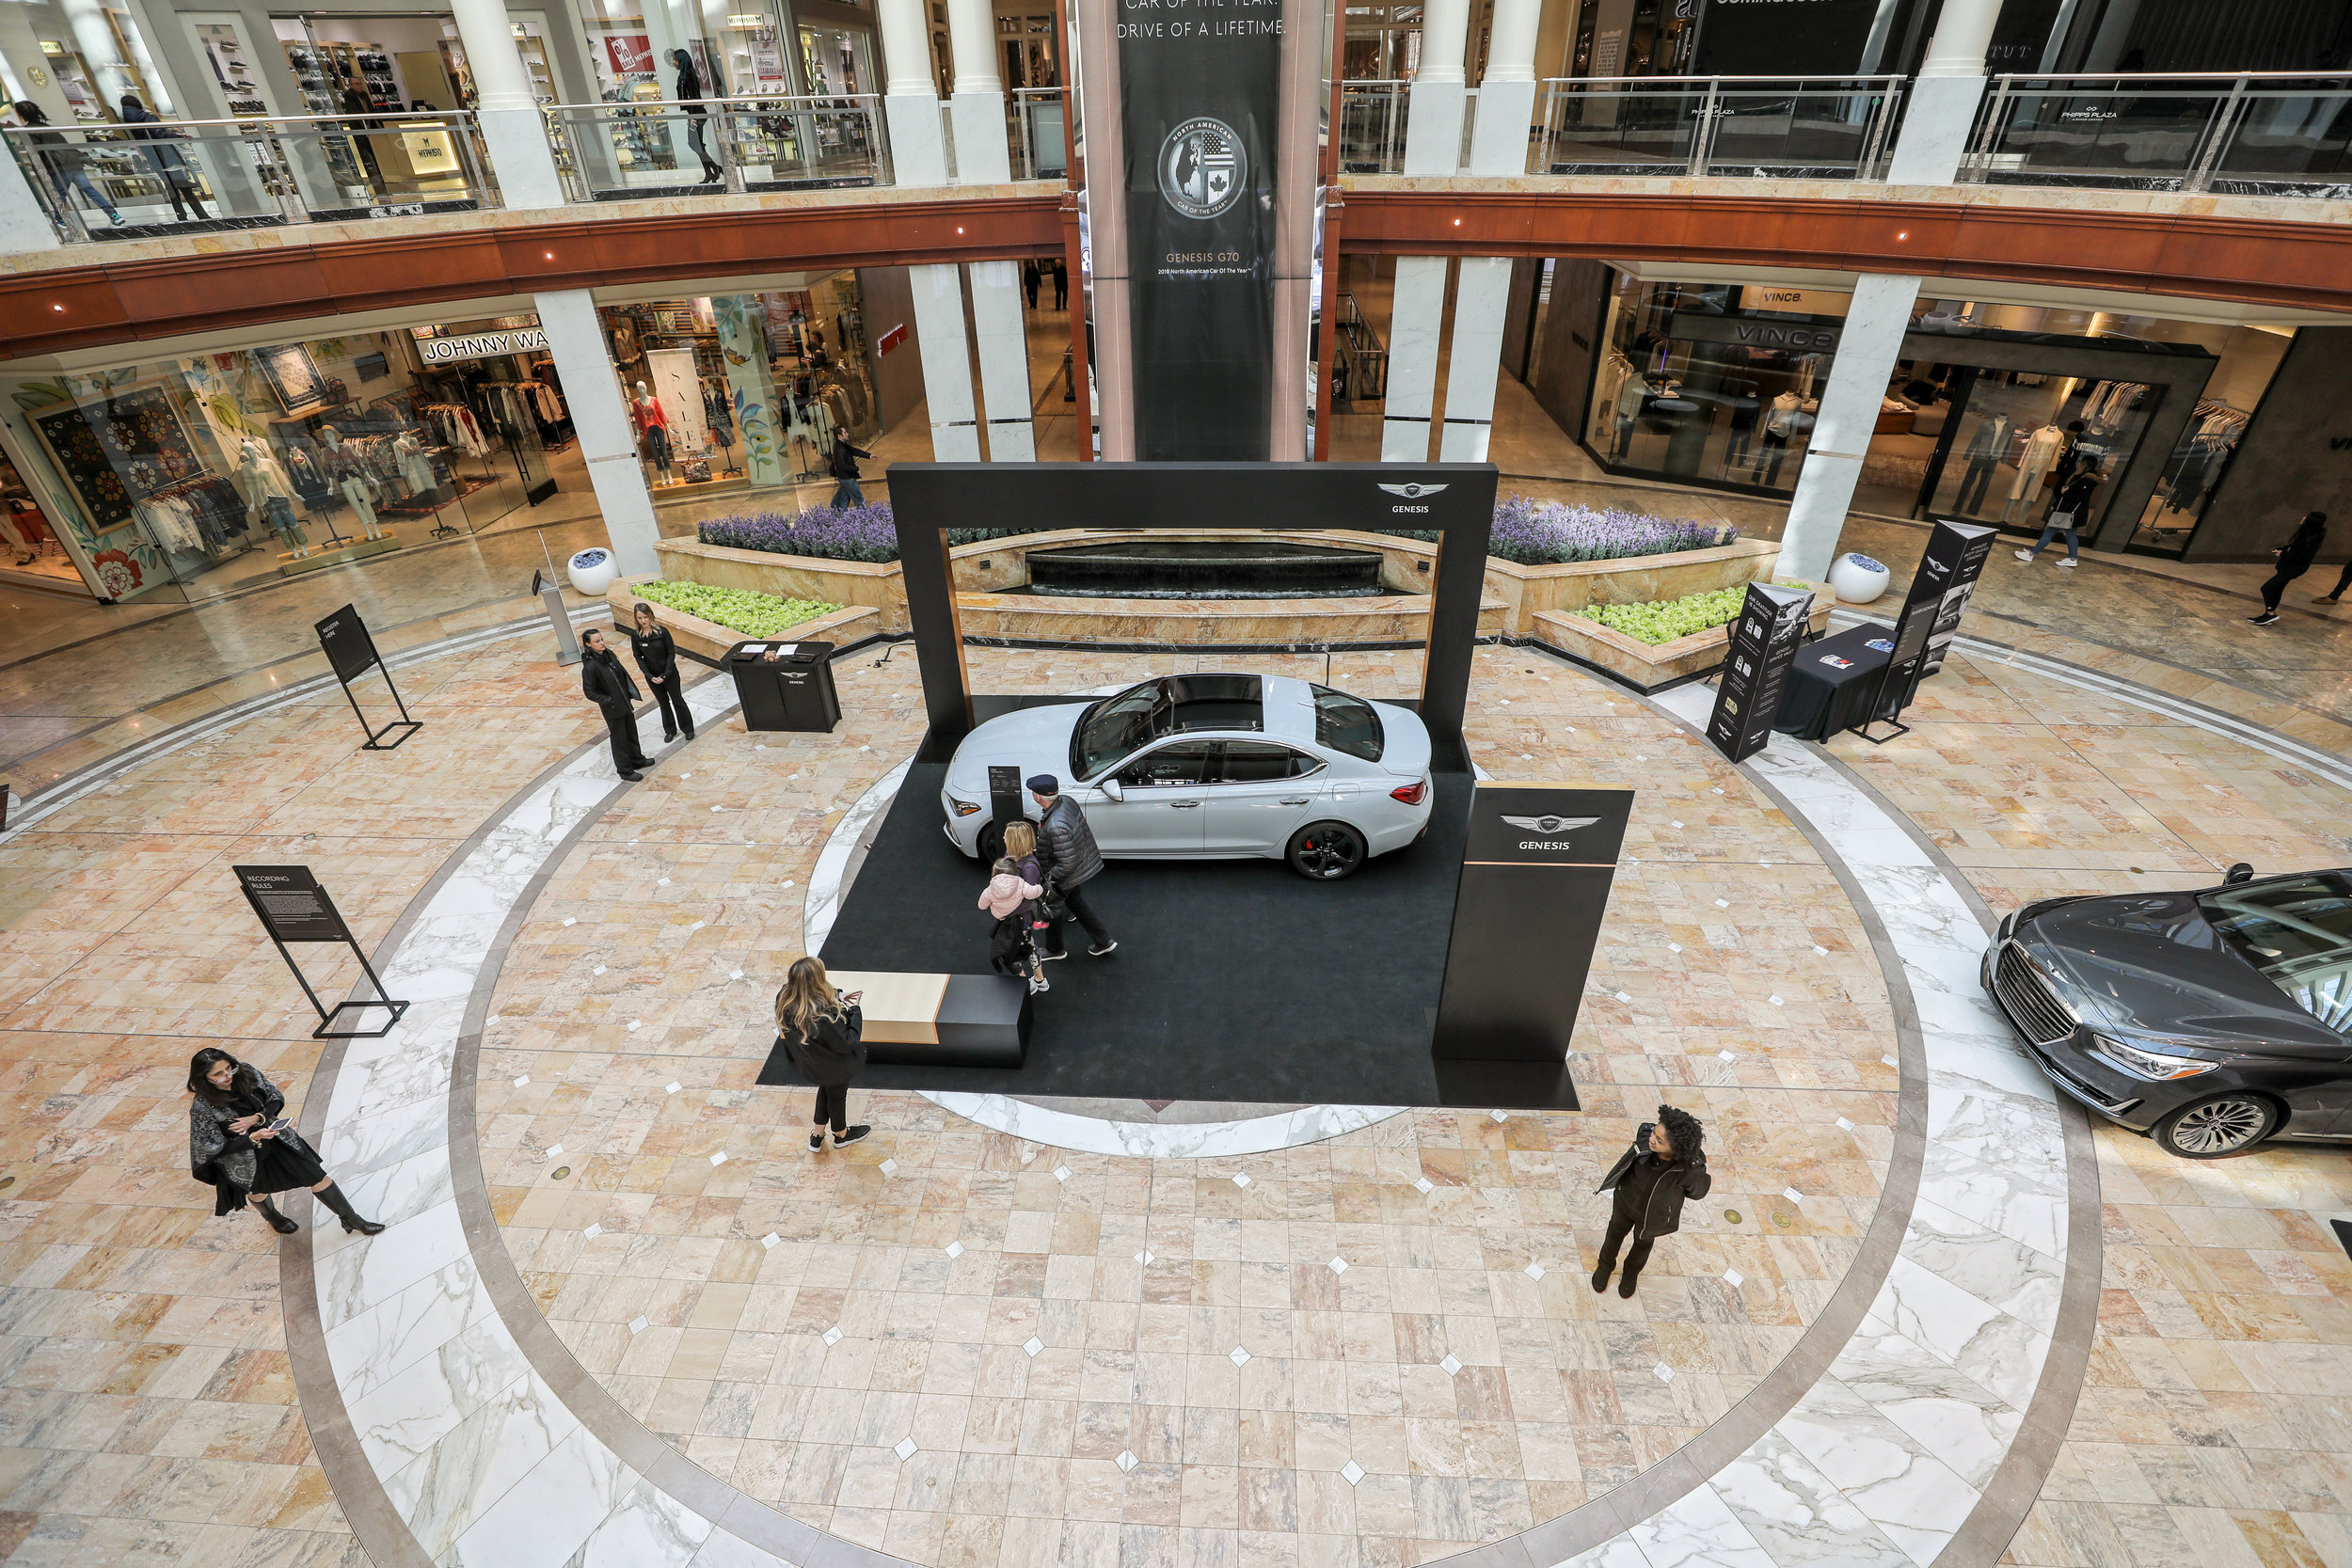 O Hello Media - Hyundai Genesis @ Phipps Plaza Mall, 1.26.19, #000006 - Top Selects-0136.jpg